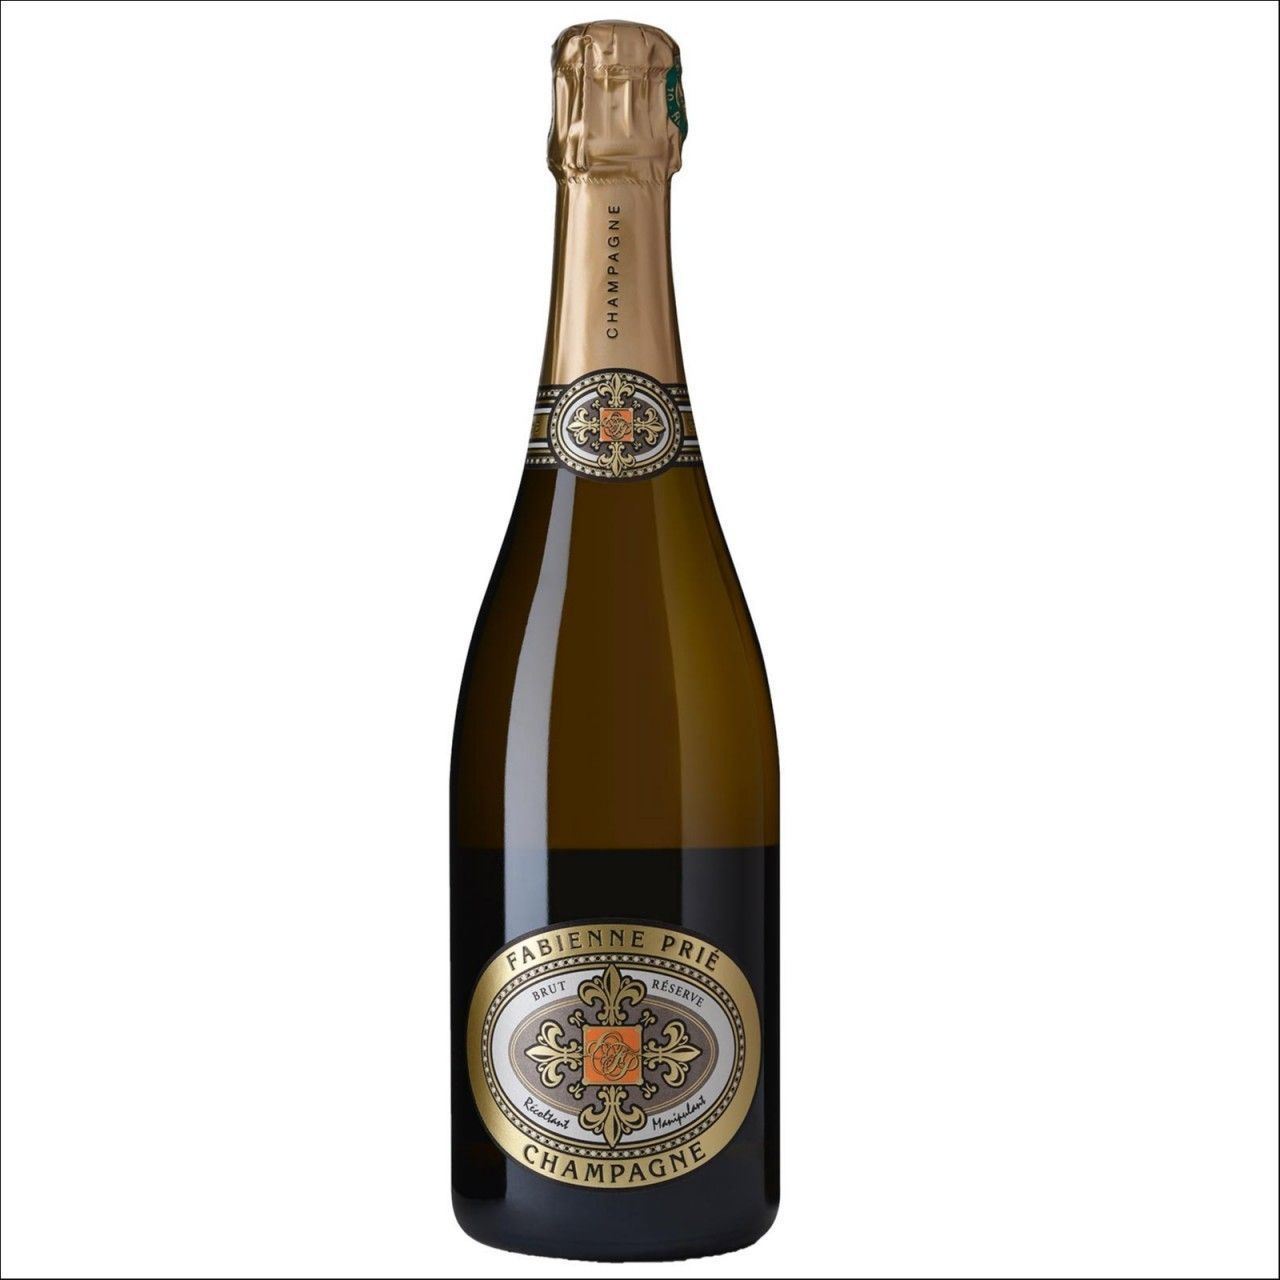 CHRYSOBULLE BY PRIE - CHAMPAGNE - Brut réserve